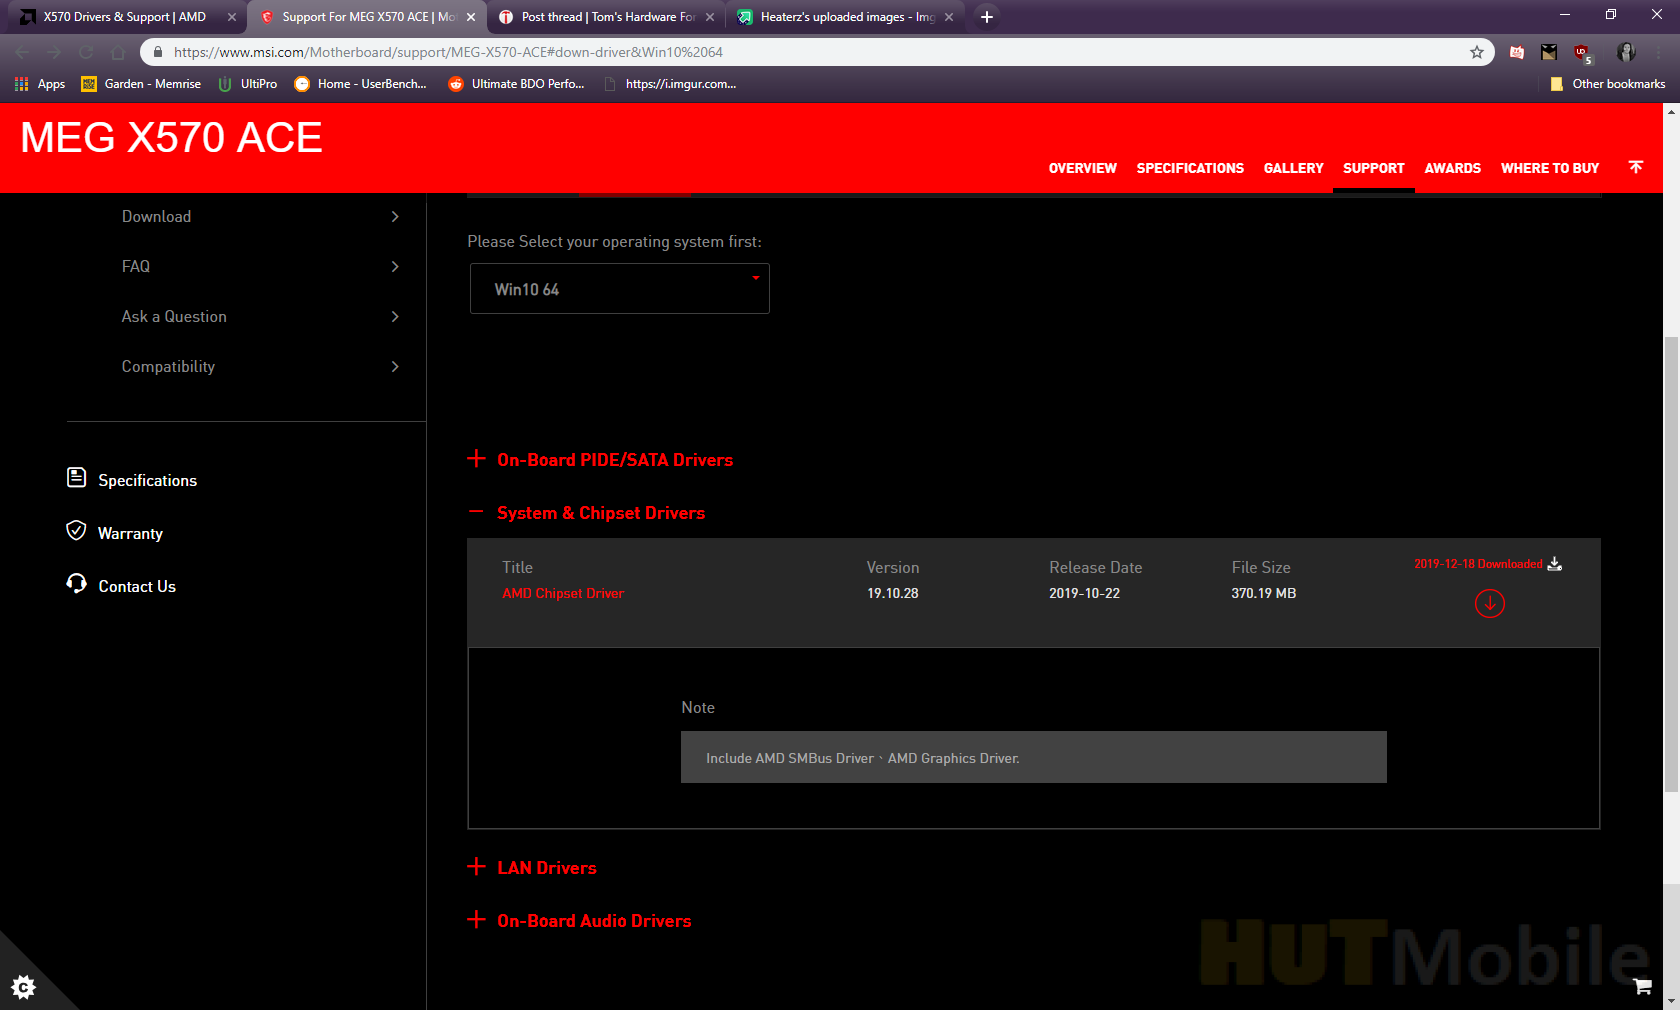 Amd Chipset Driver Download 2 04 28 626 And Amd Ryzen Master Overclocking Tool 2 2 0 1543 Hut Mobile